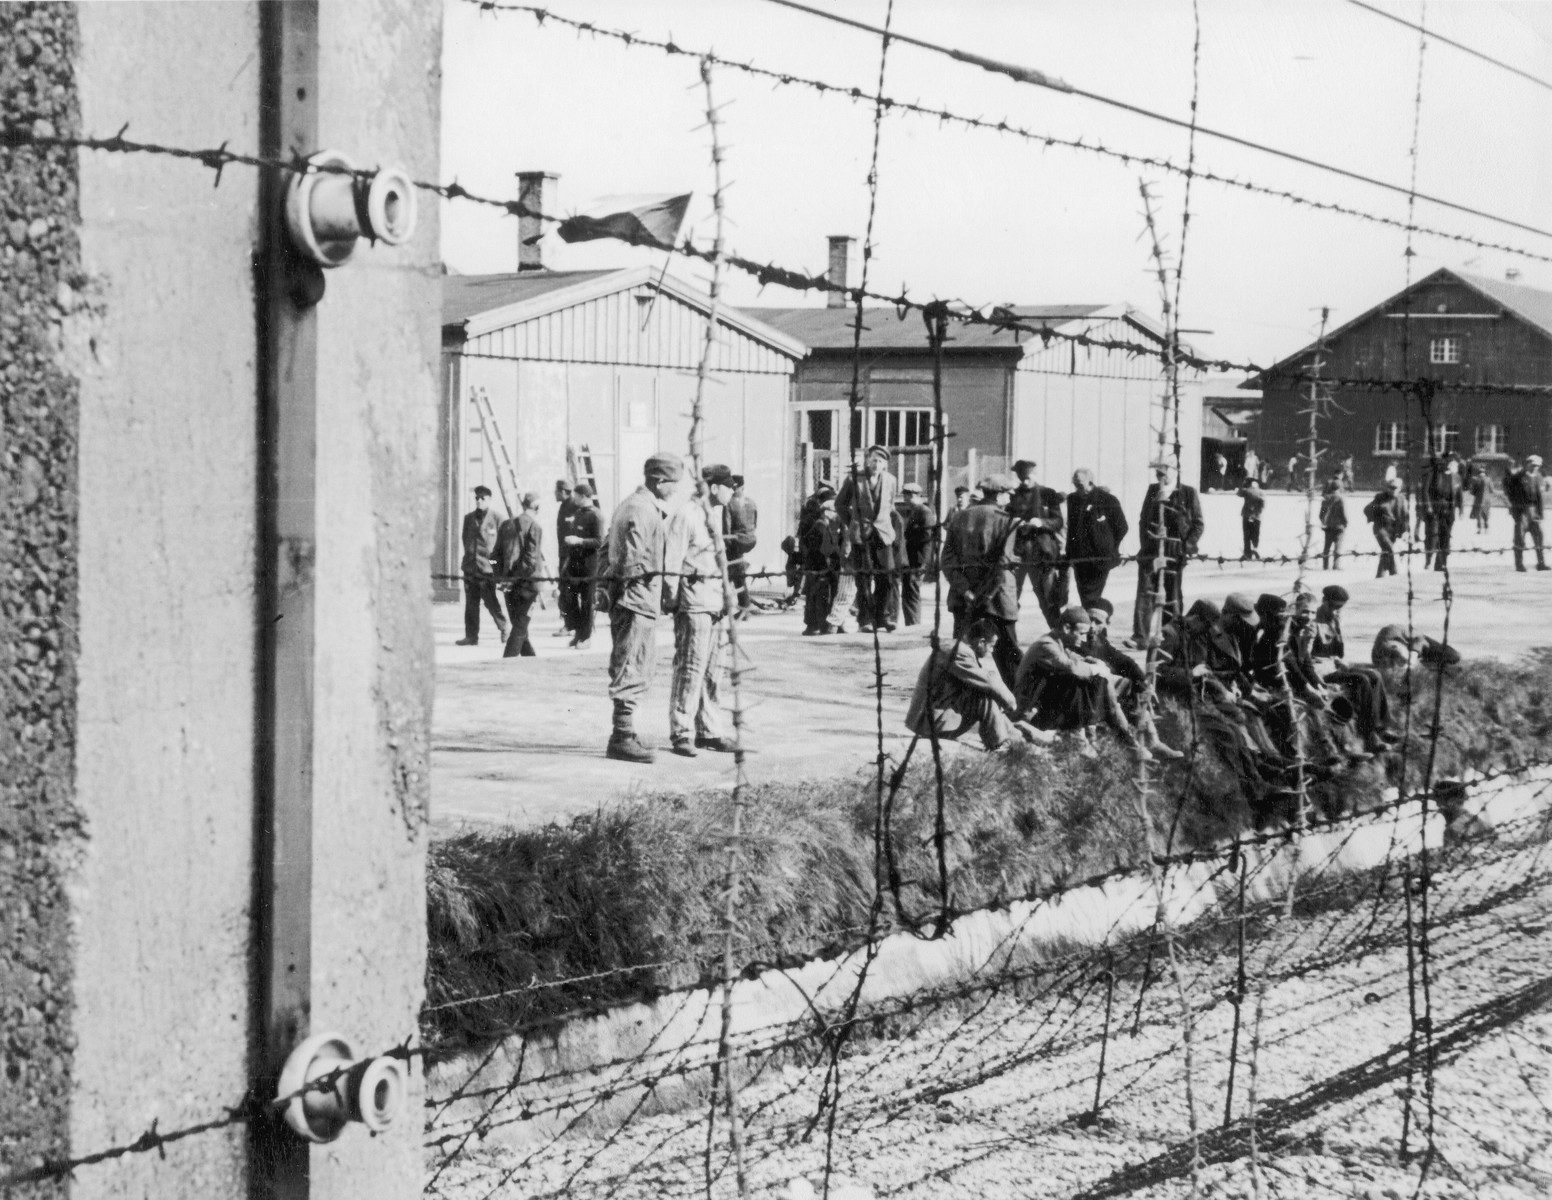 Survivors of the Dachau concentration camp rest alongside the surrounding moat behind a barbed wire fence.